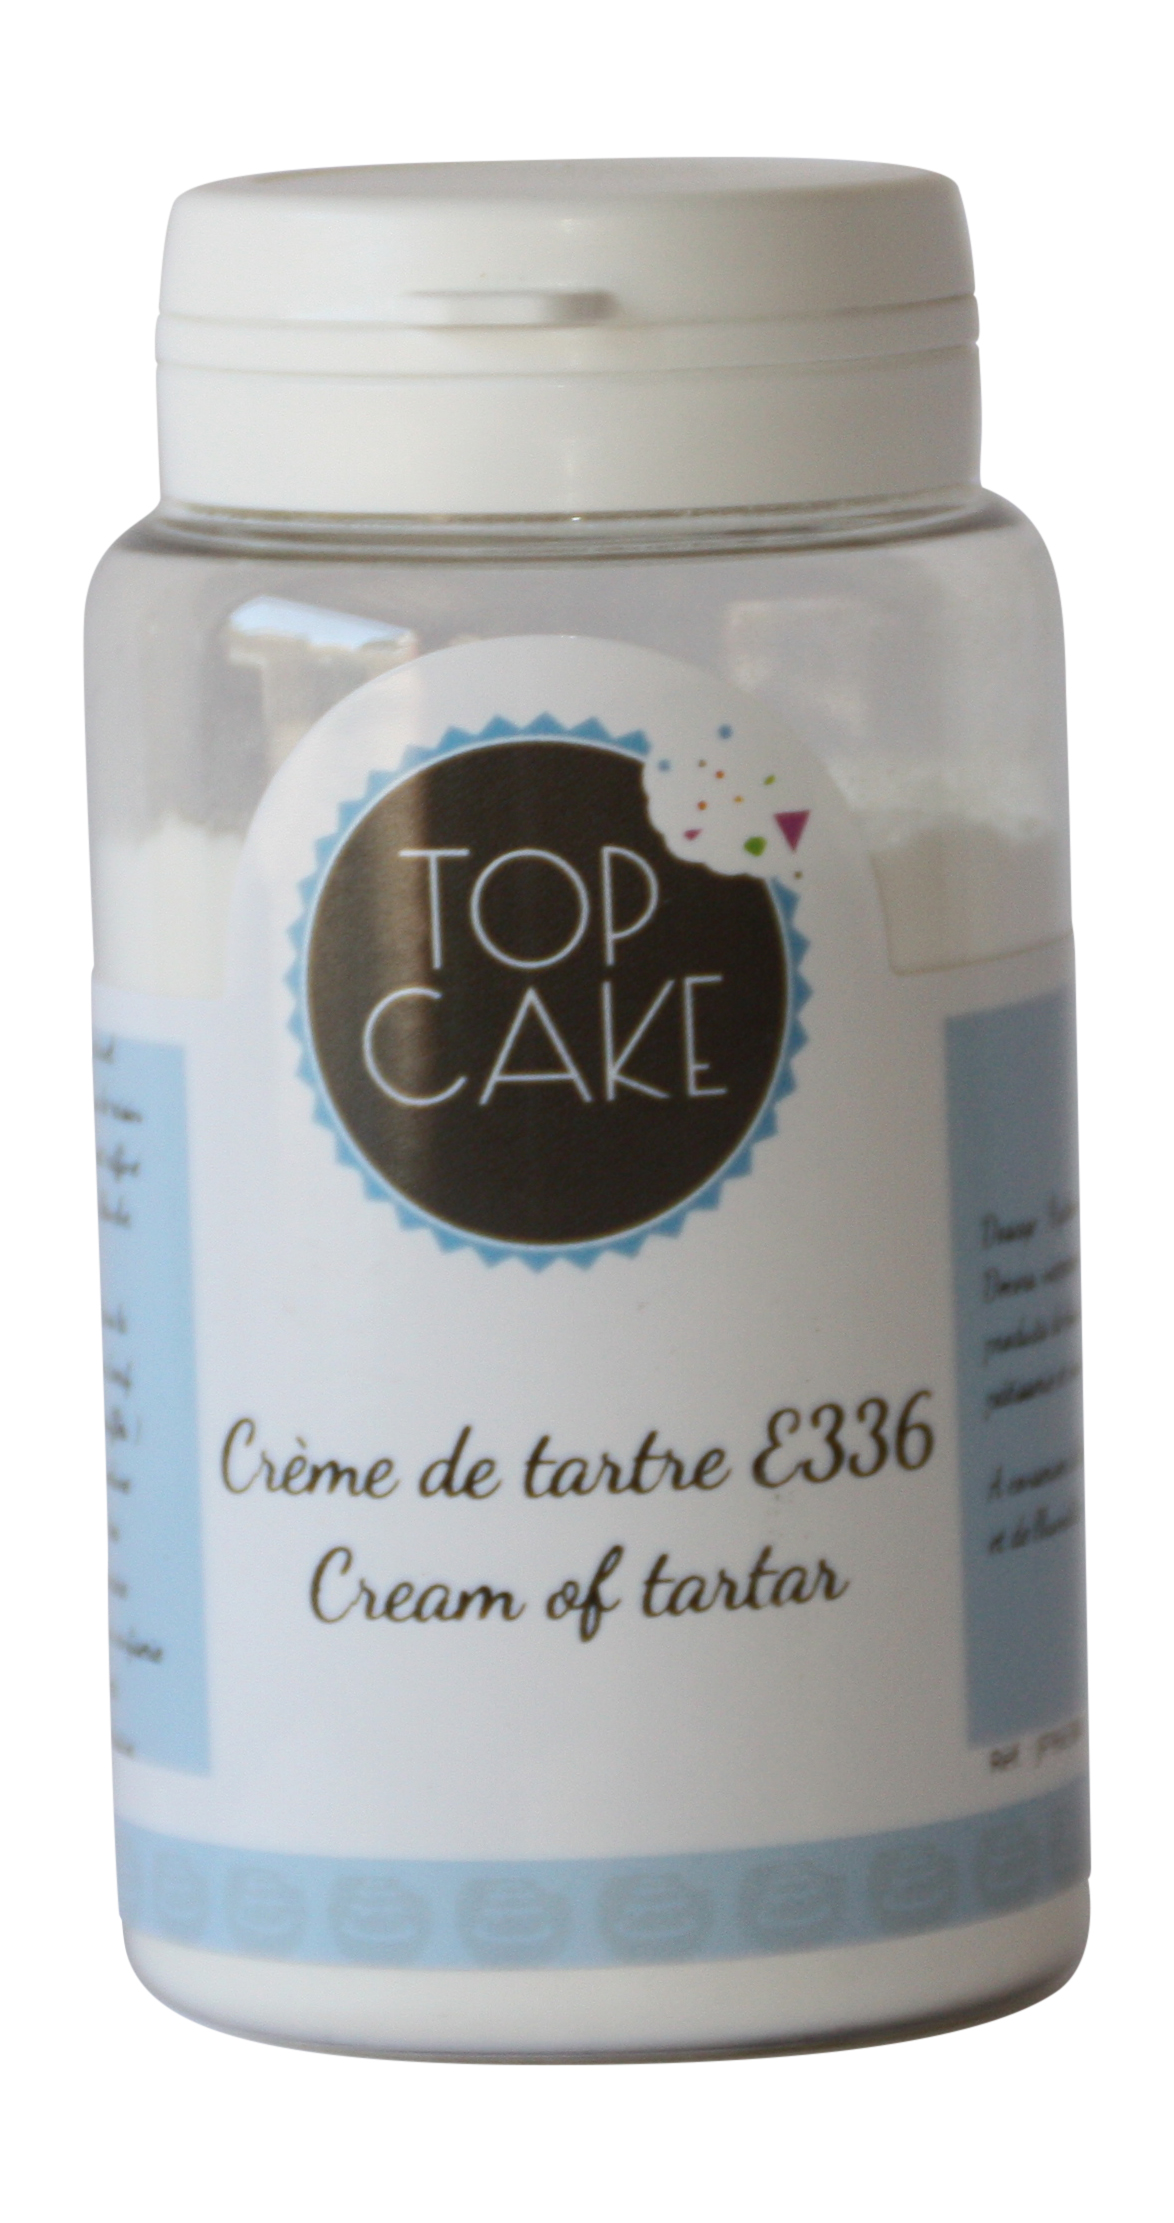 Cream of tartar / Potassium bitartrate 100g - TopCake